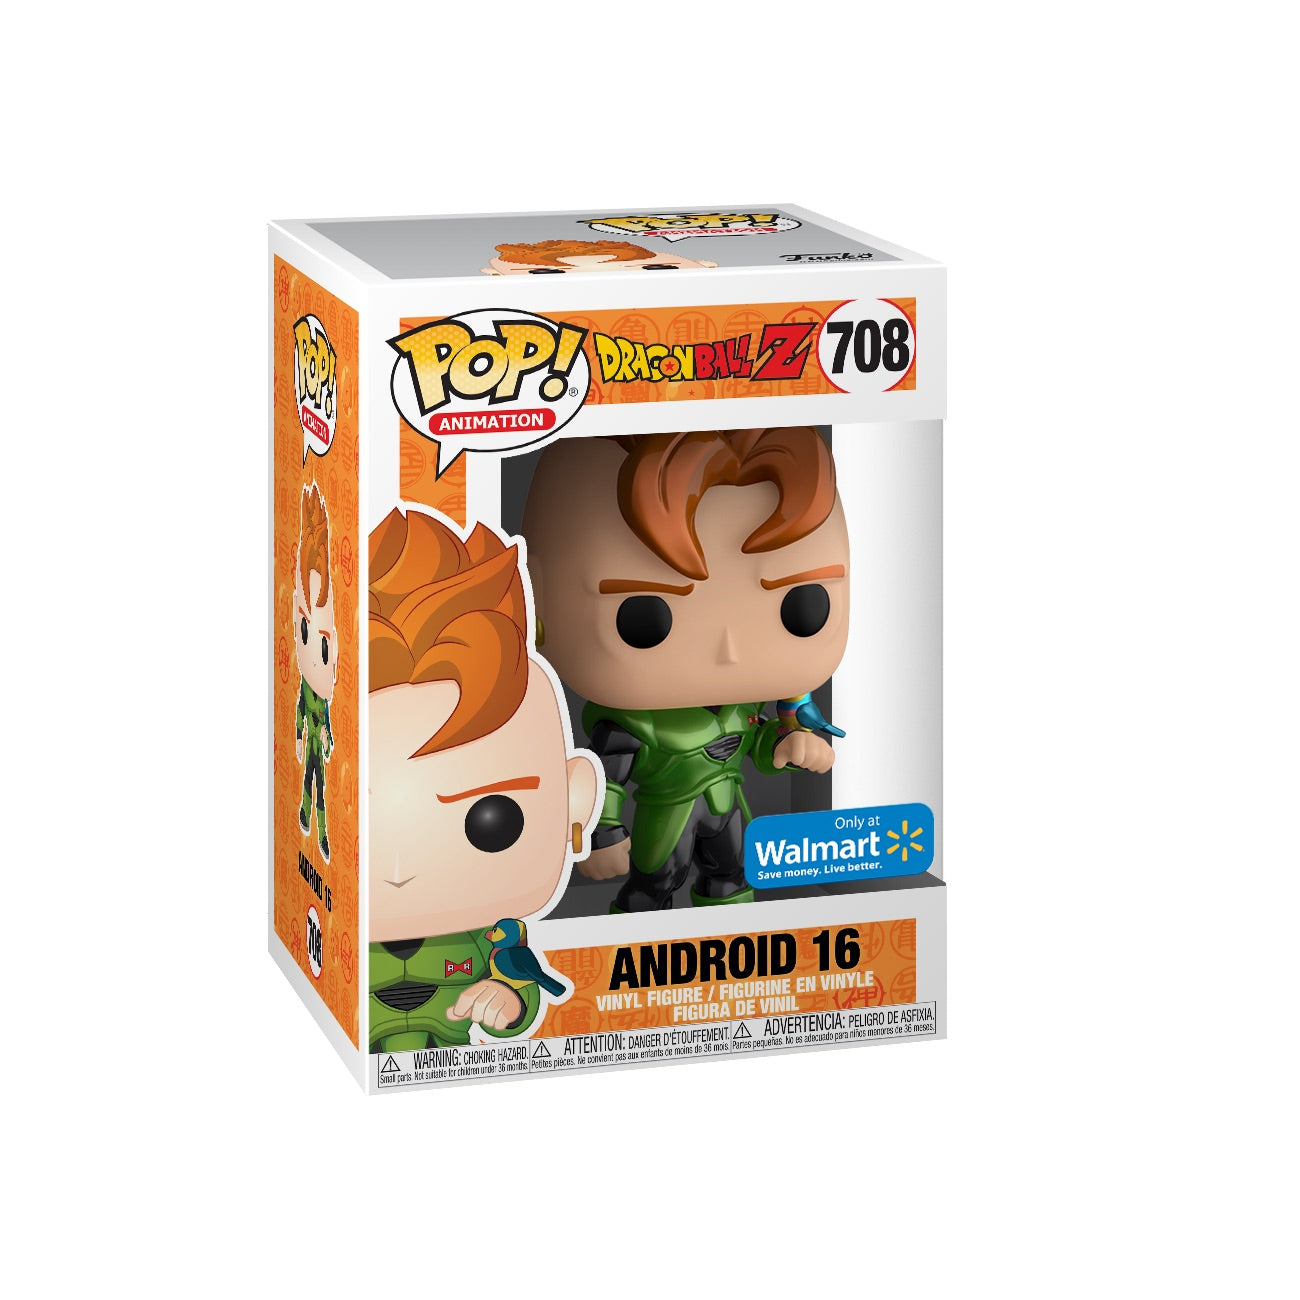 Dragon Ball Z Android 16 Metallic Exclusive